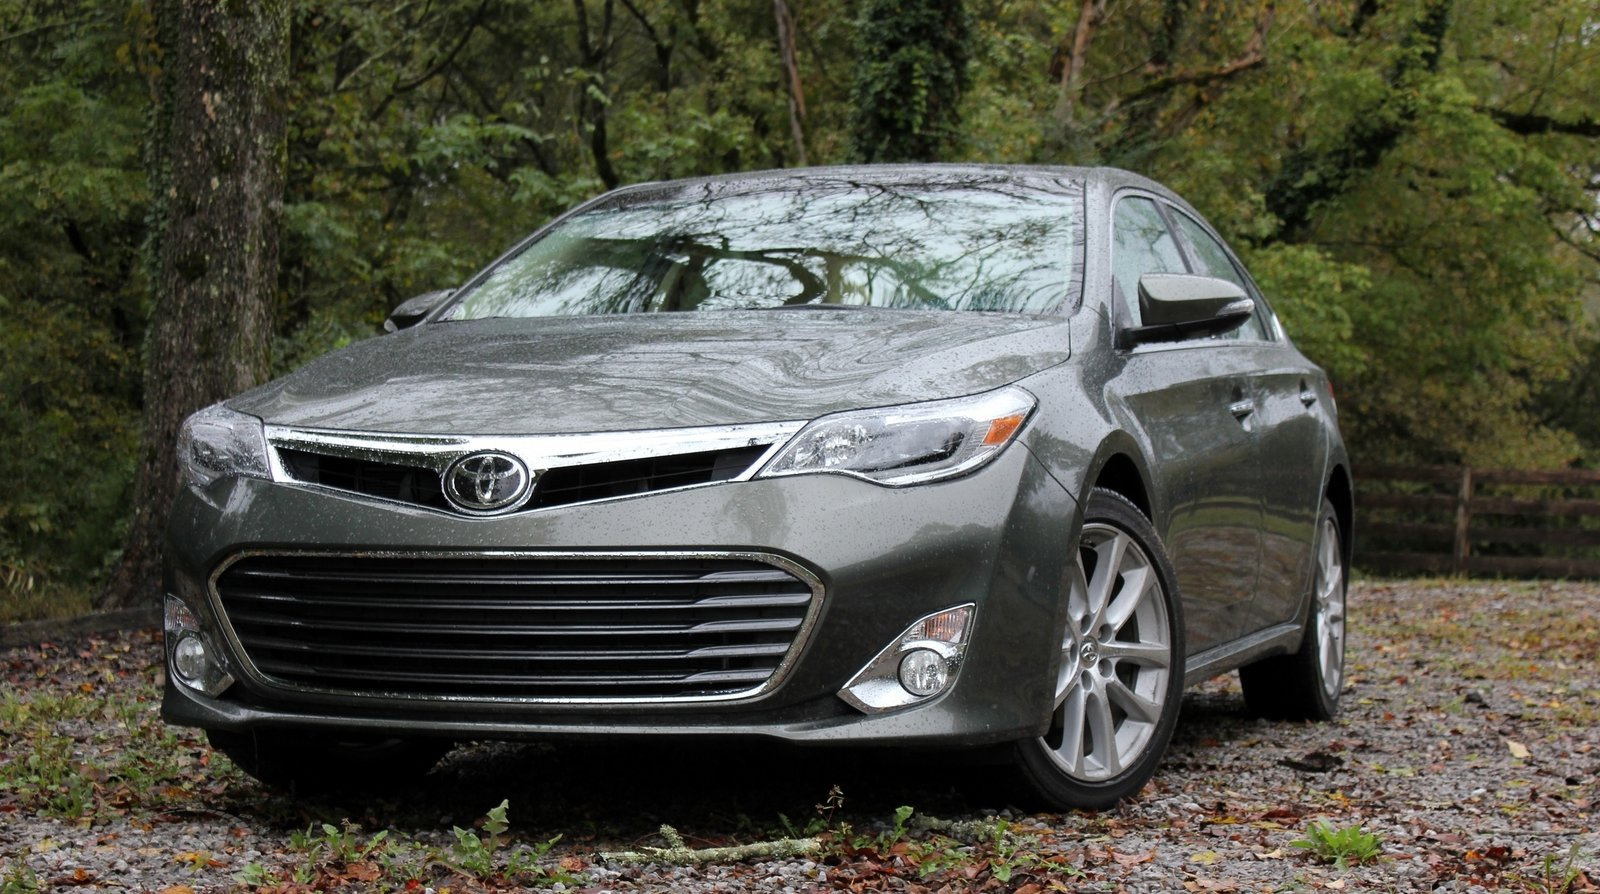 2014 toyota avalon limited driven review top speed. Black Bedroom Furniture Sets. Home Design Ideas